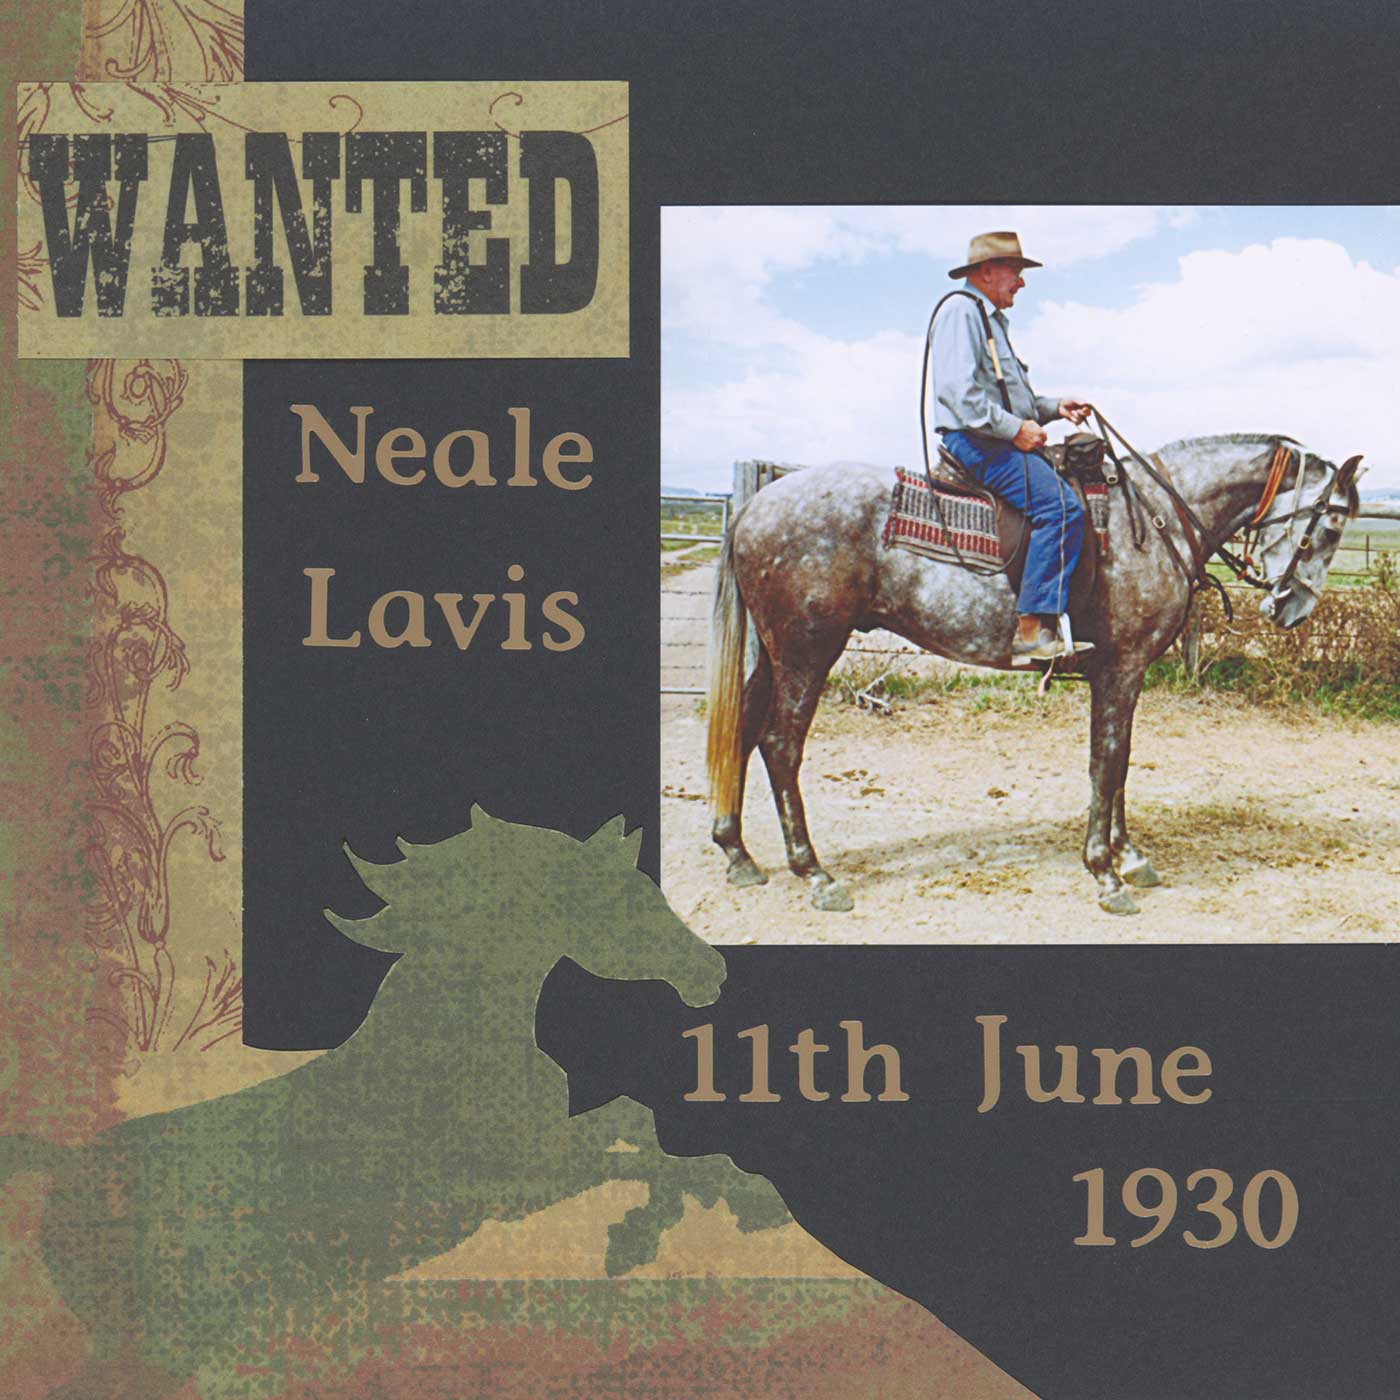 Neale riding his stockhorse Clancy, ready for a trip to the mountains. - click to view larger image